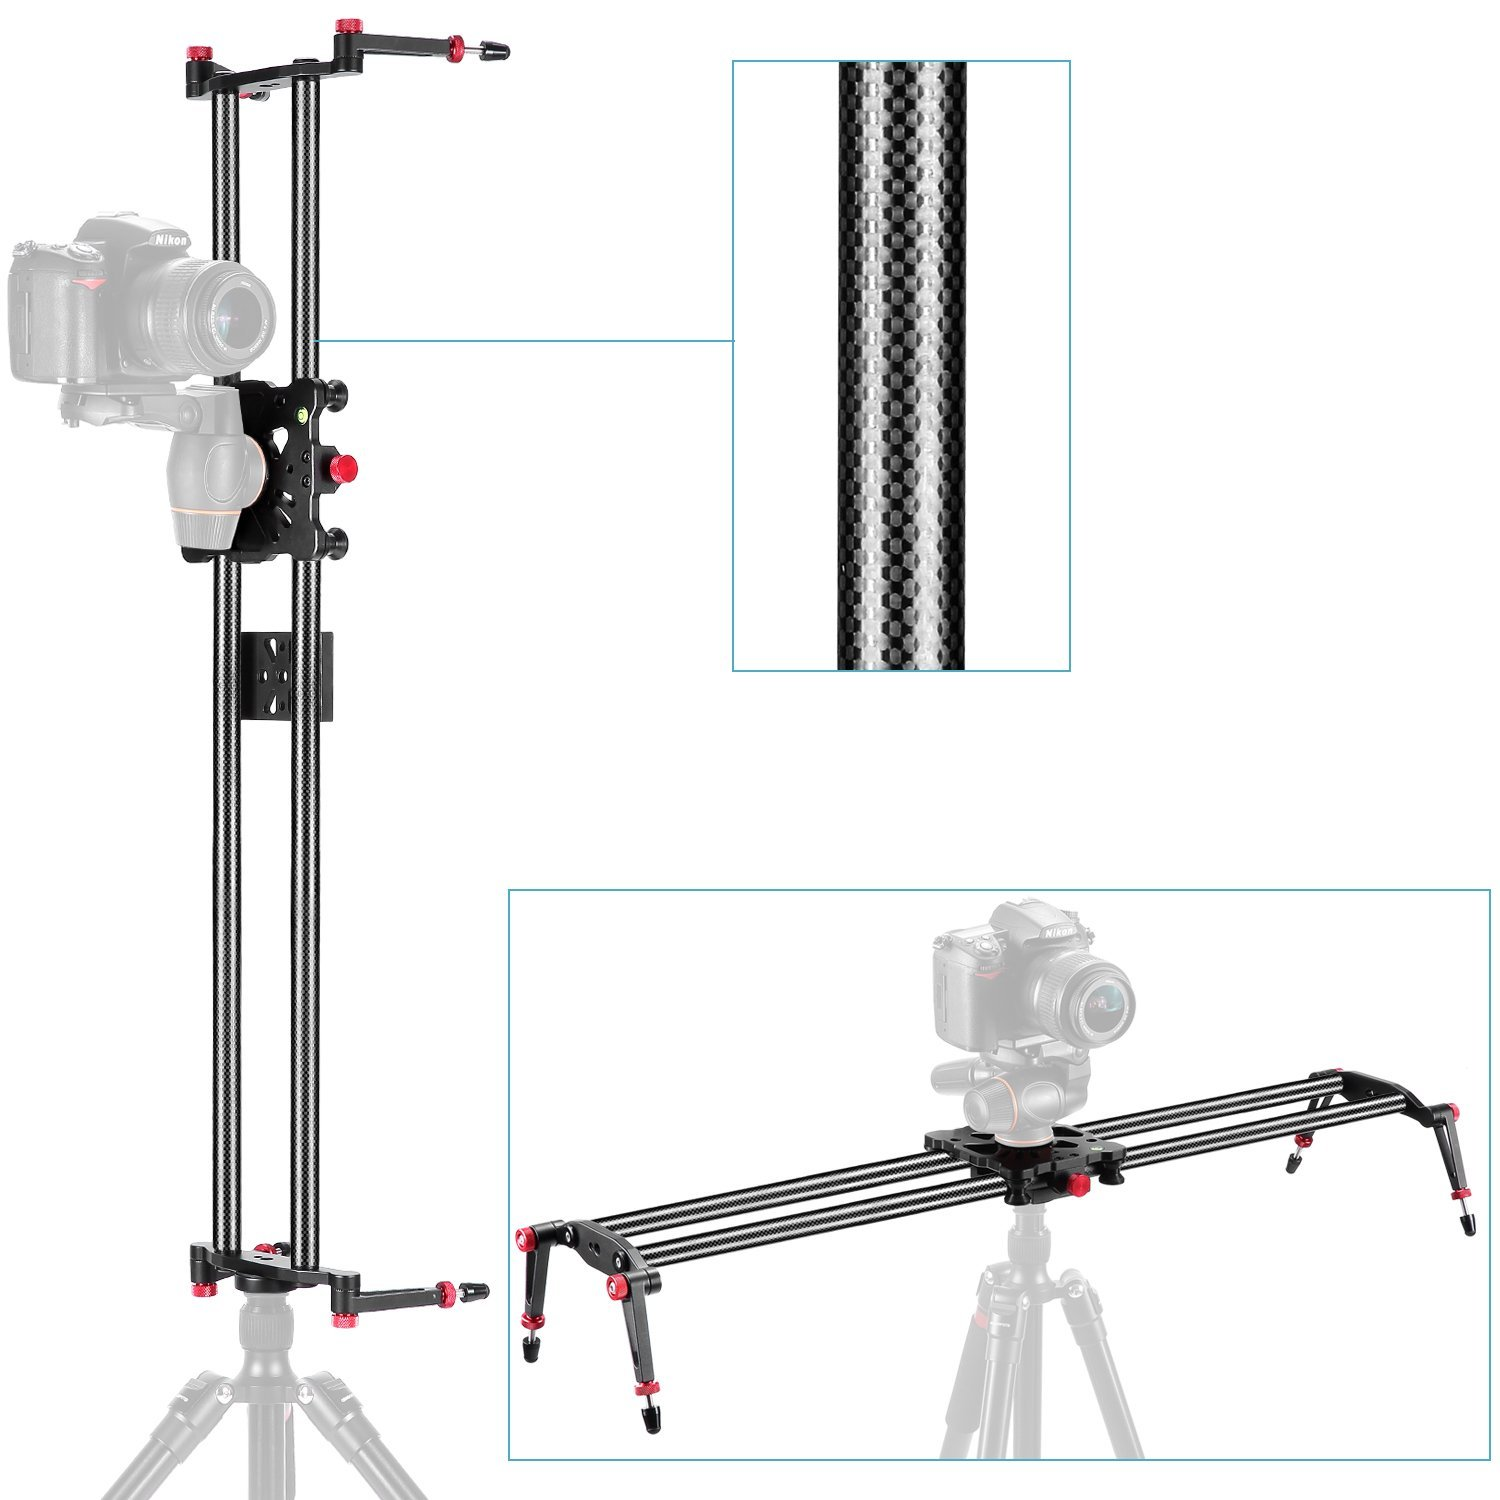 Neewer 47.2''/1.2m Carbon Fiber Camera Track Dolly Slider Rail System with 17.5lbs/8kg Load Capacity for Stabilizing Movie Film Video Making Photography DSLR Camera Nikon Canon Pentax Sony